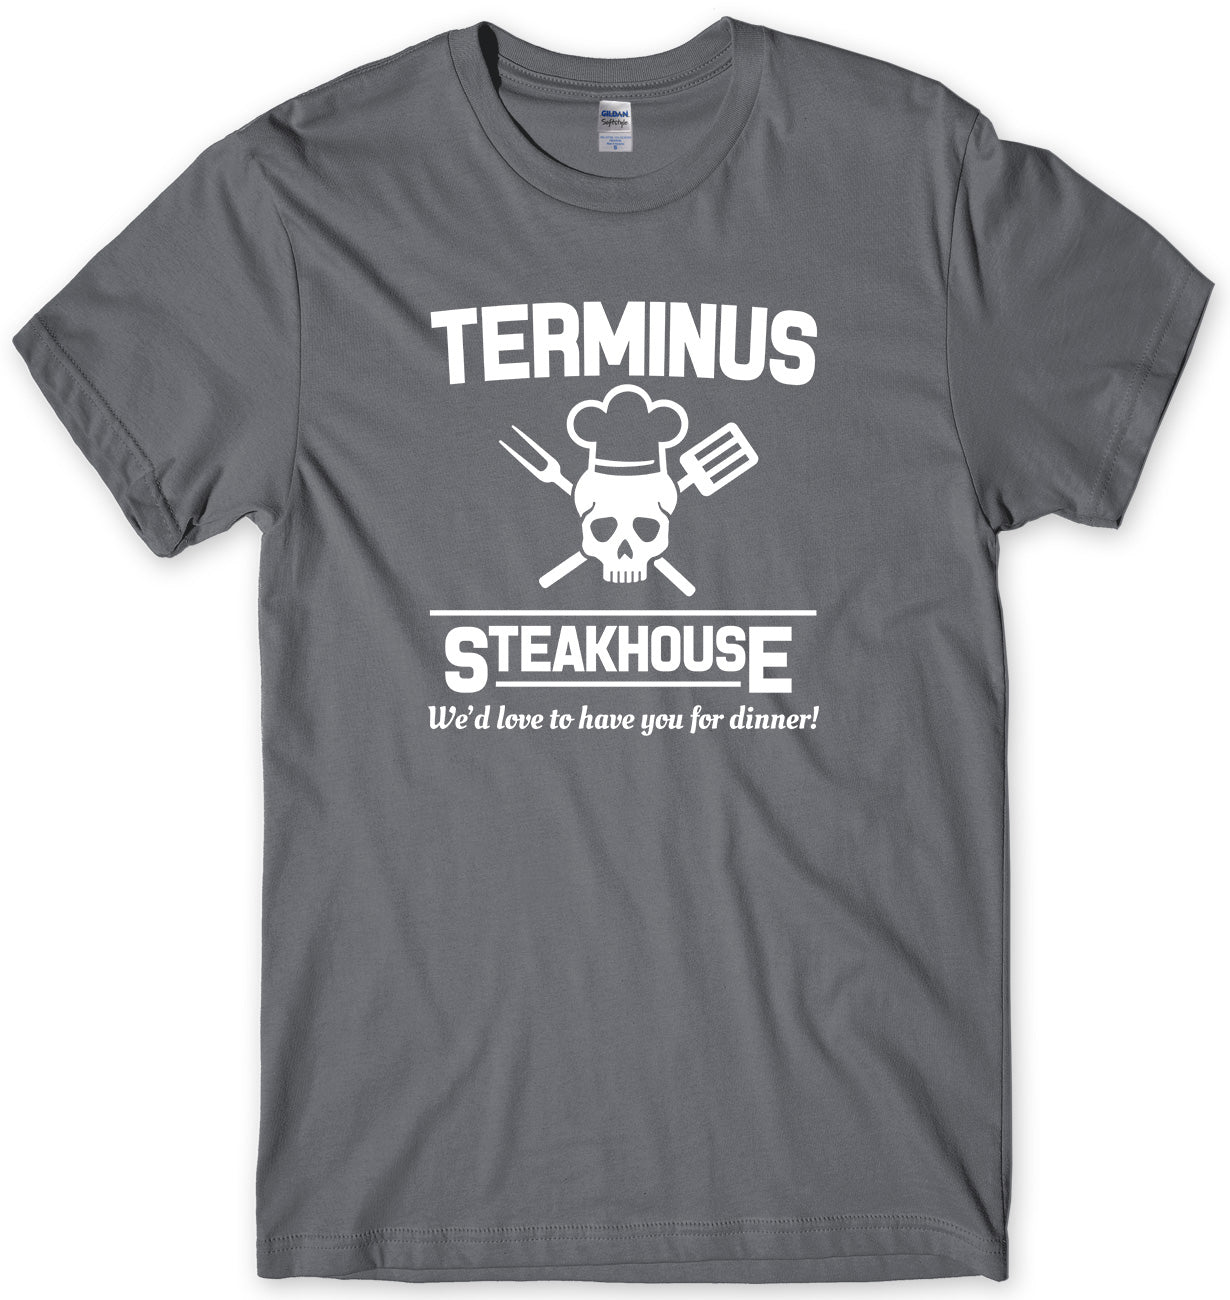 TERMINUS STEAKHOUSE MENS FUNNY UNISEX T-SHIRT